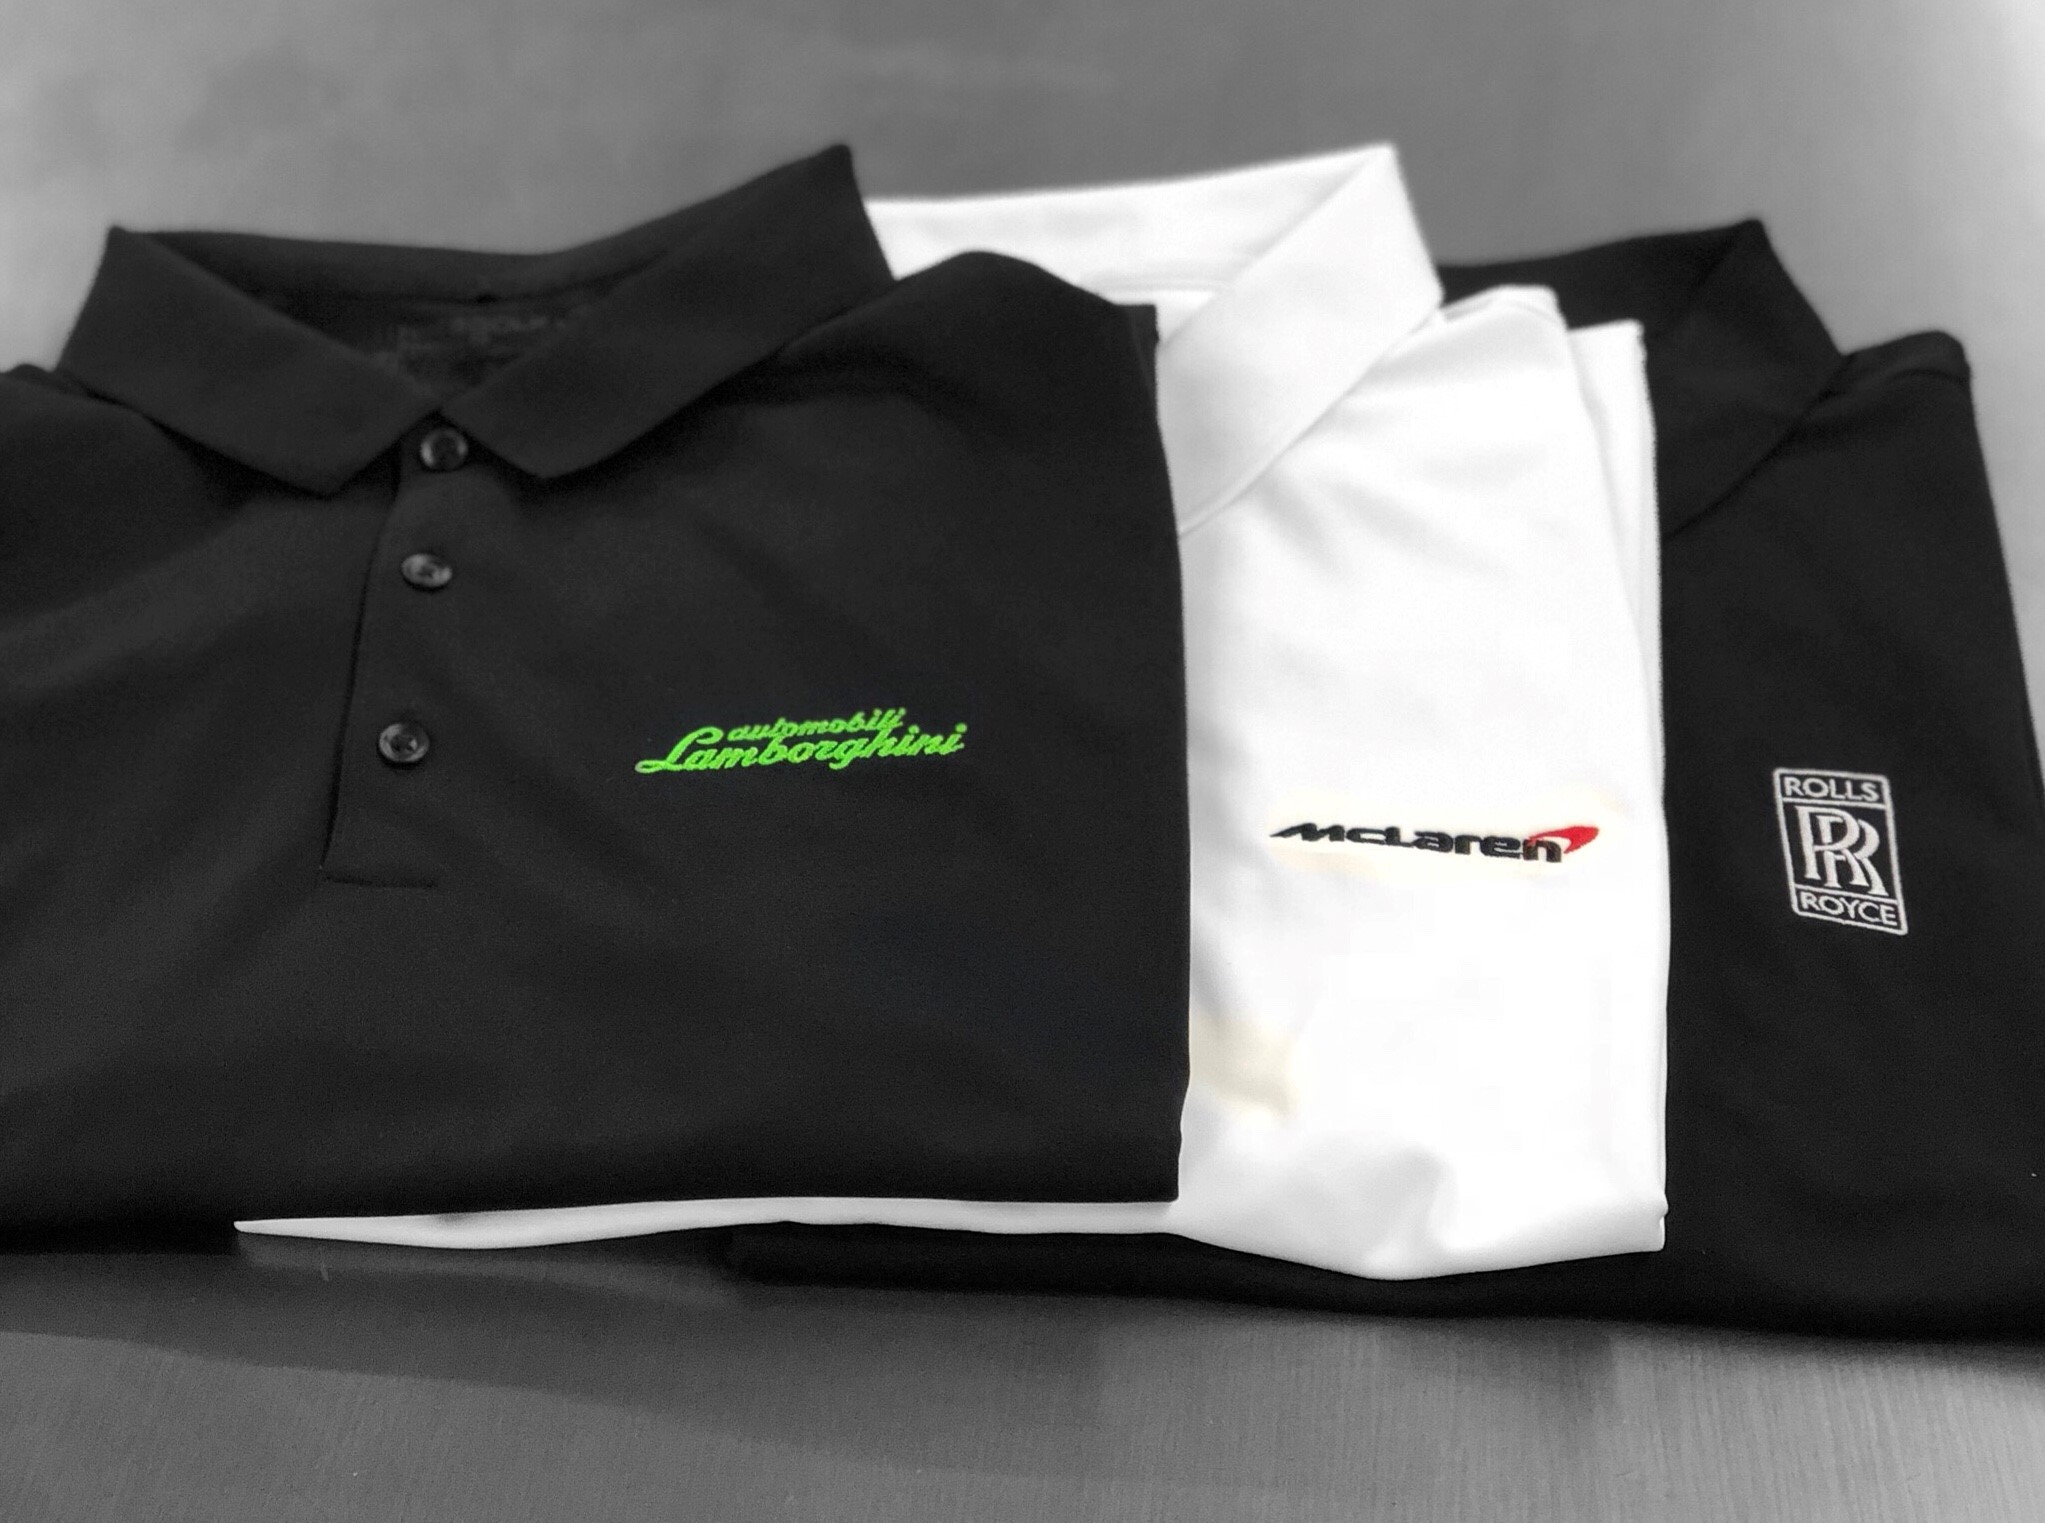 logounltd_laser_etching_embroidery_screen_printing_corporate_apparel_uniform_custom_tshirts_uniforms_dye_sublimation_kirkland_bellevue_seattle_redmond_branded_merchandise_promotional_products_logo_untd (11).jpg